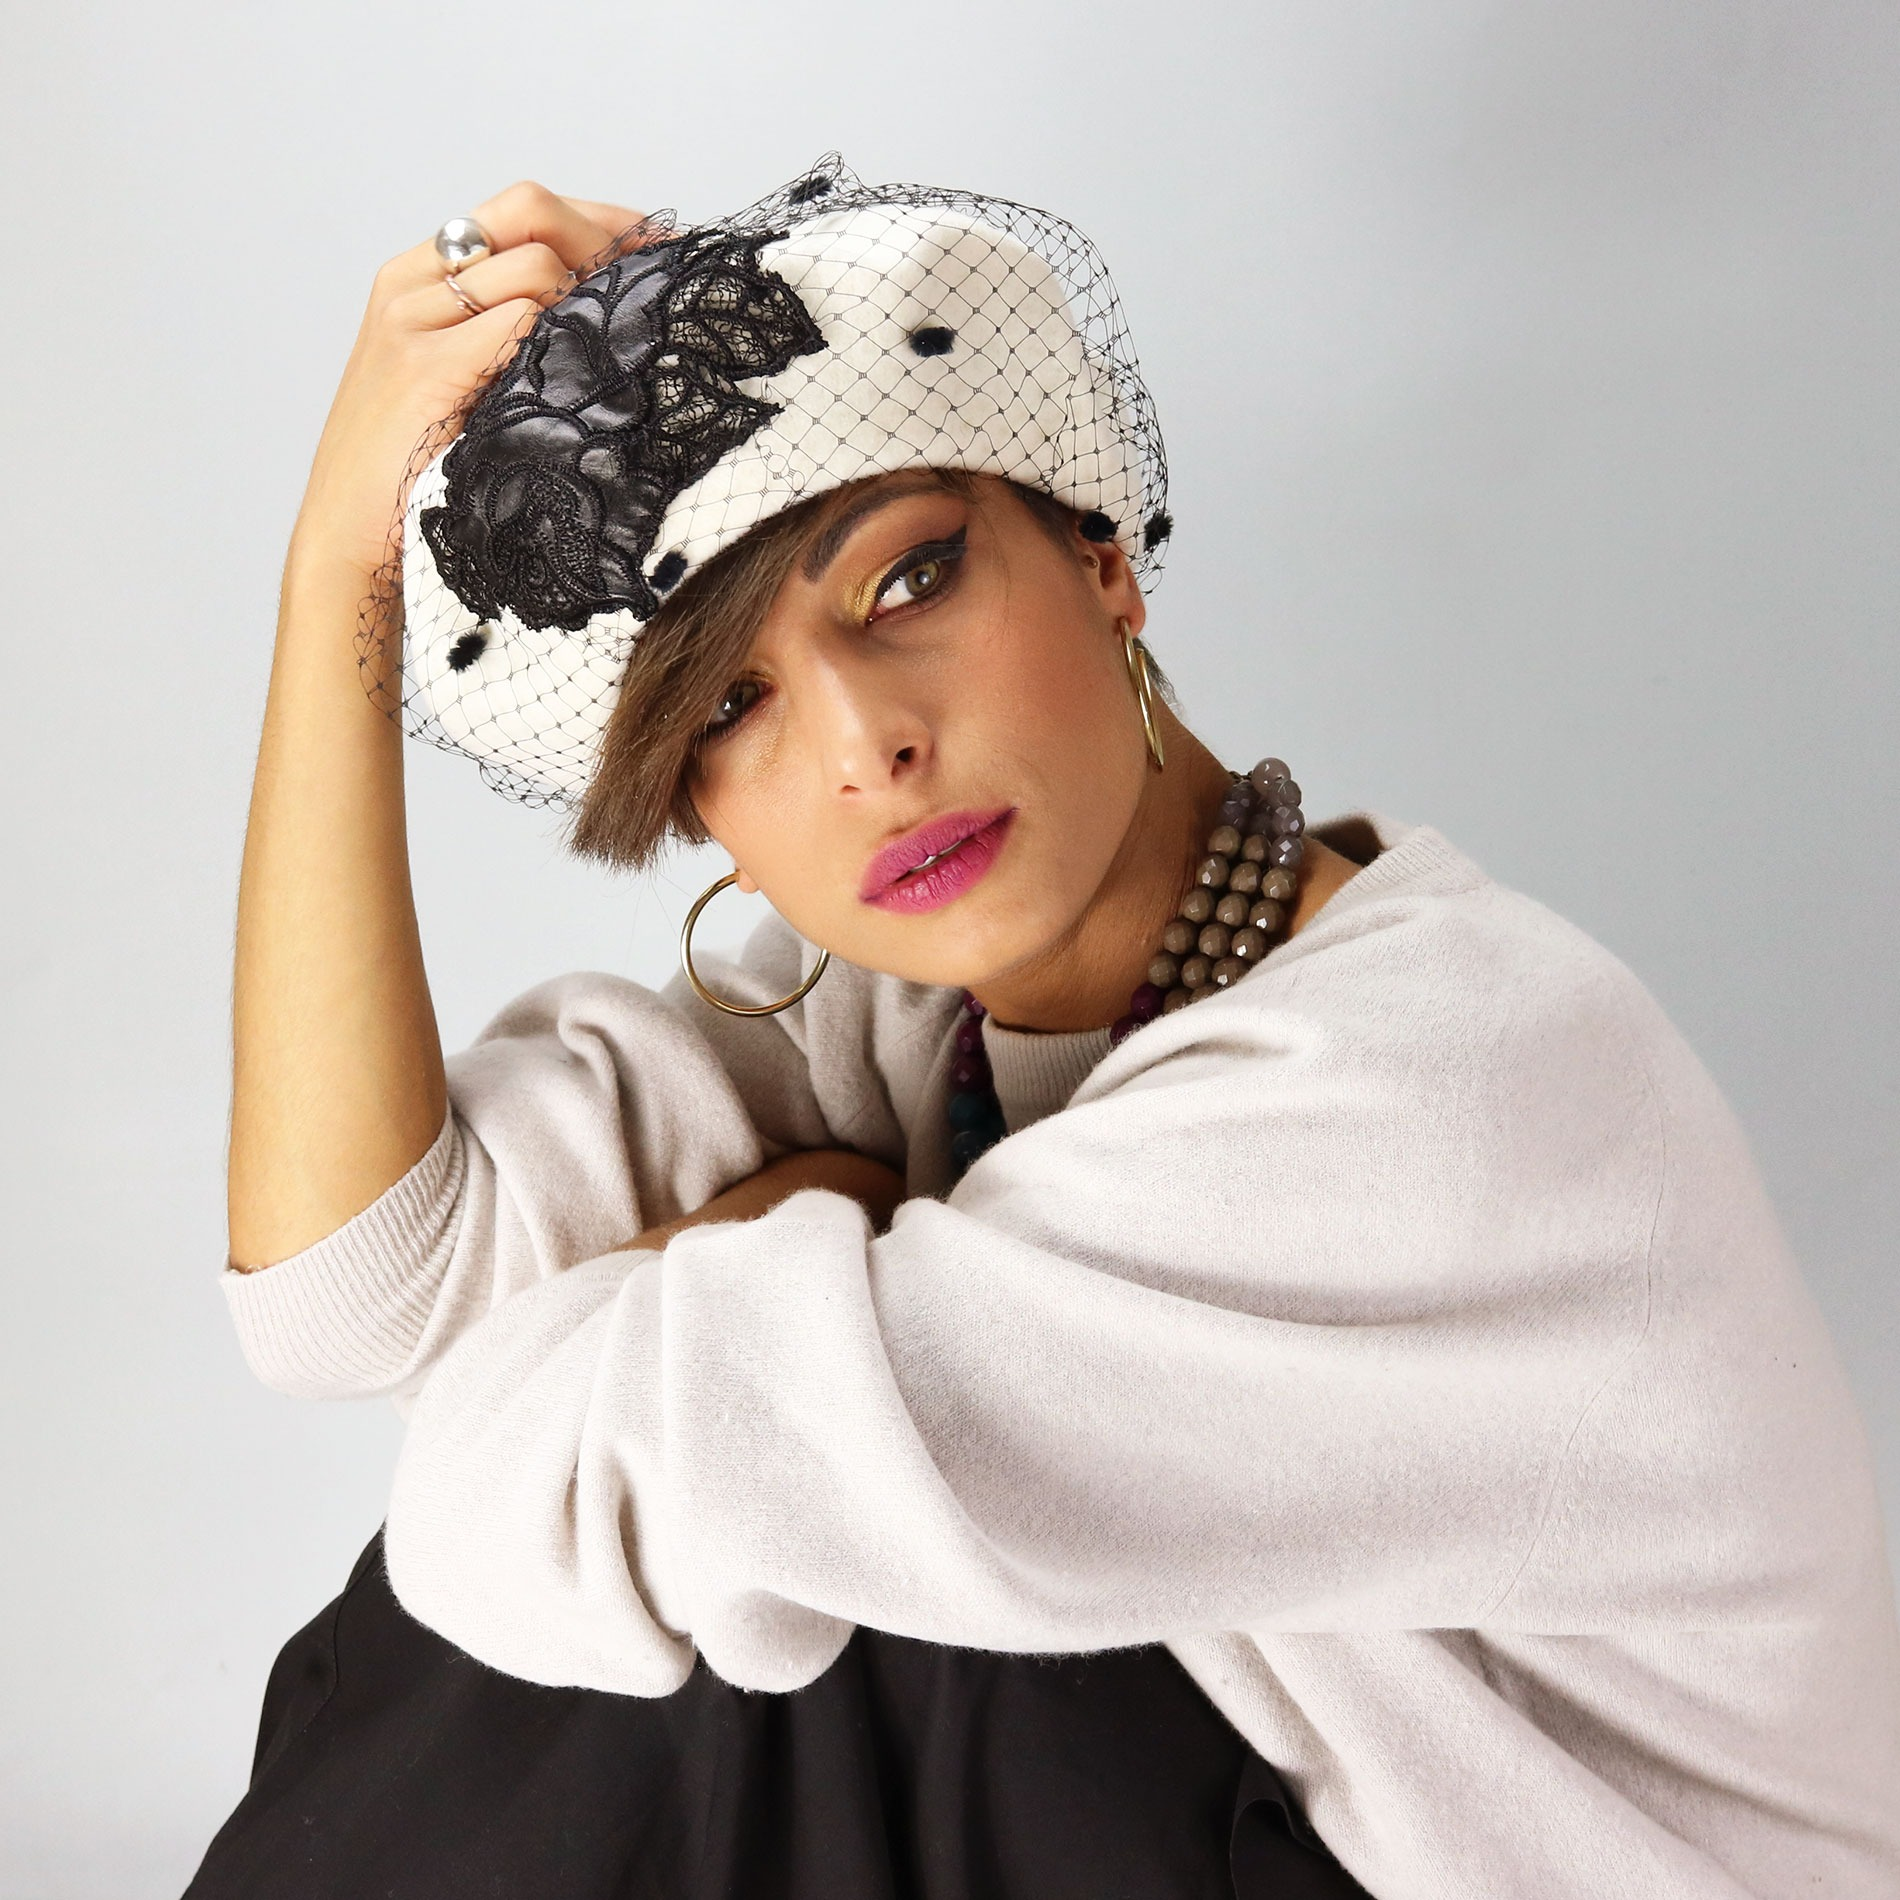 ac142189ea319 Fashionable white women s beret with veil and floral patch